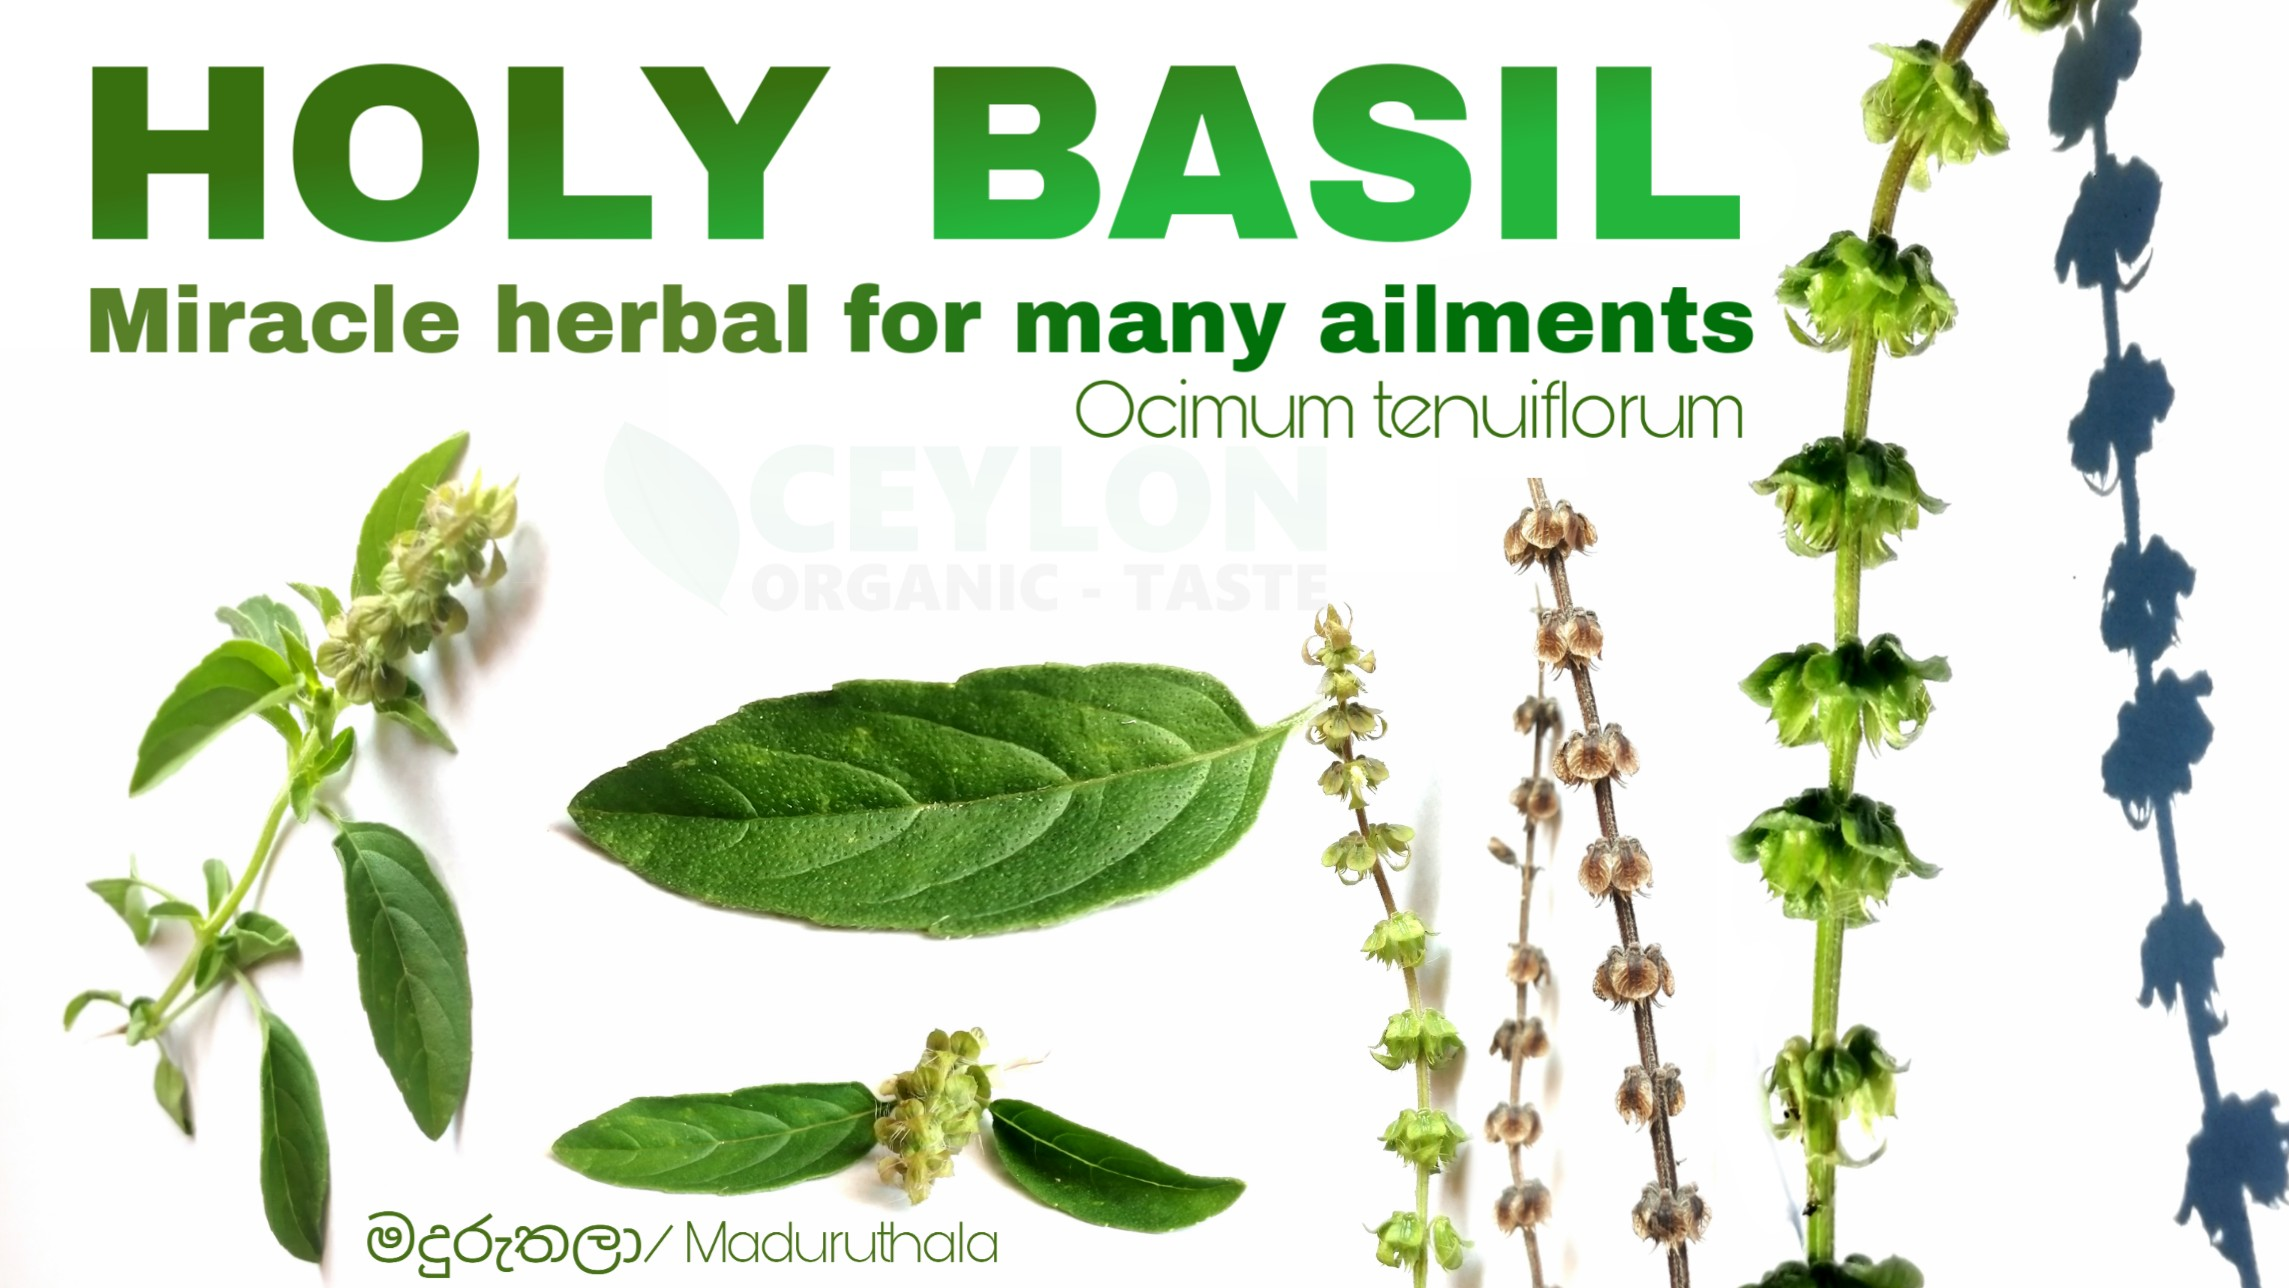 Holy Basil – Miracle herbal for many ailments